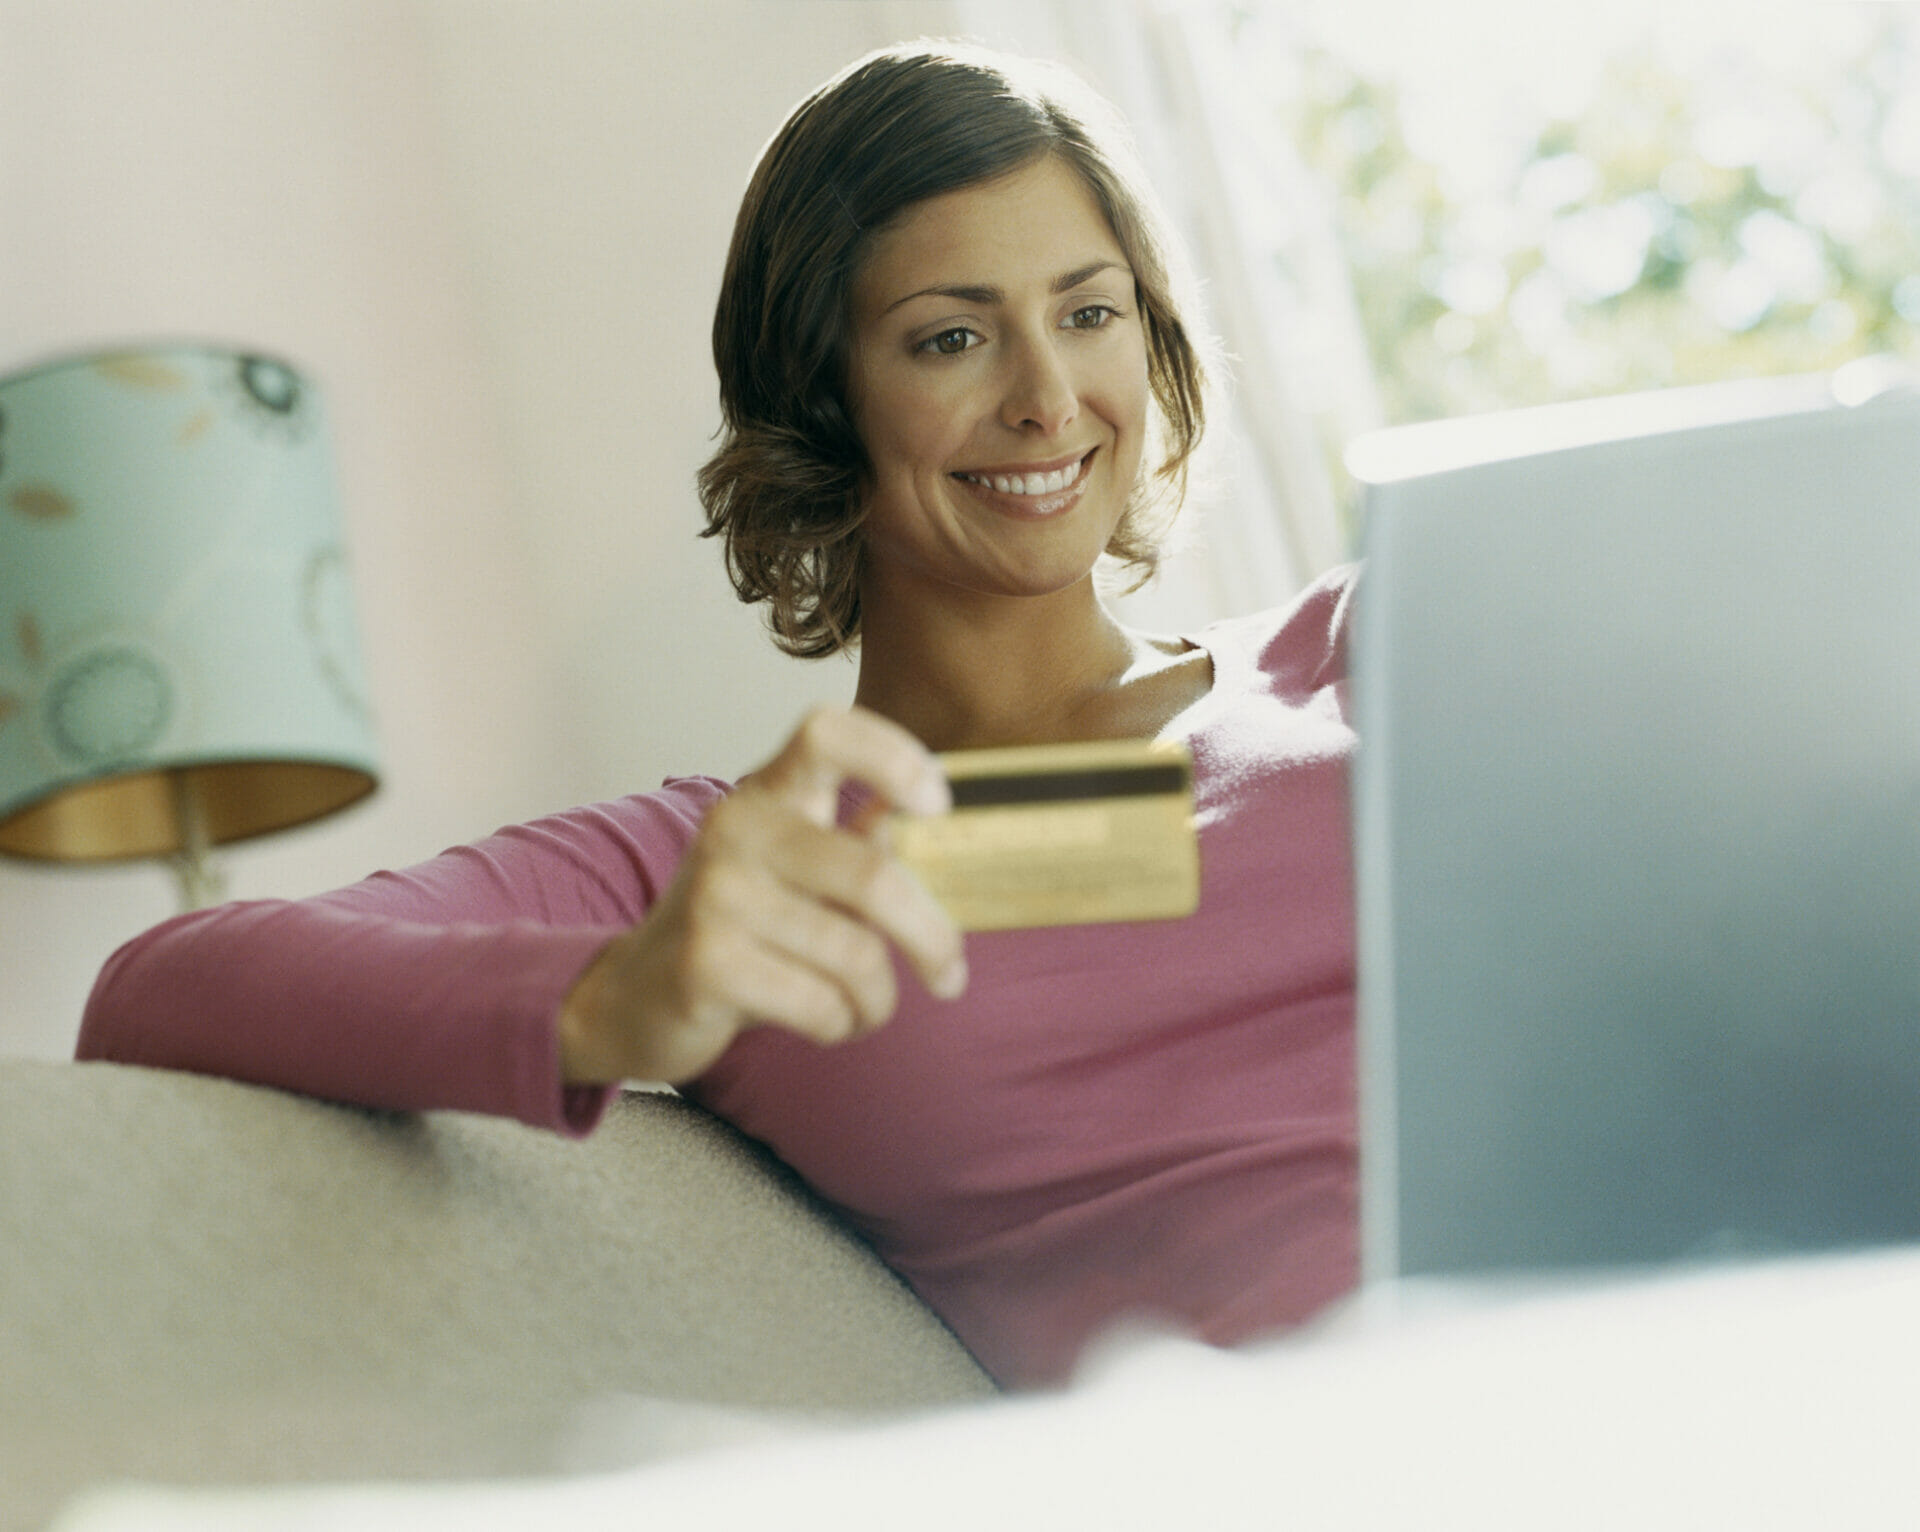 4 Online Giving Practices We Could Be Doing Better